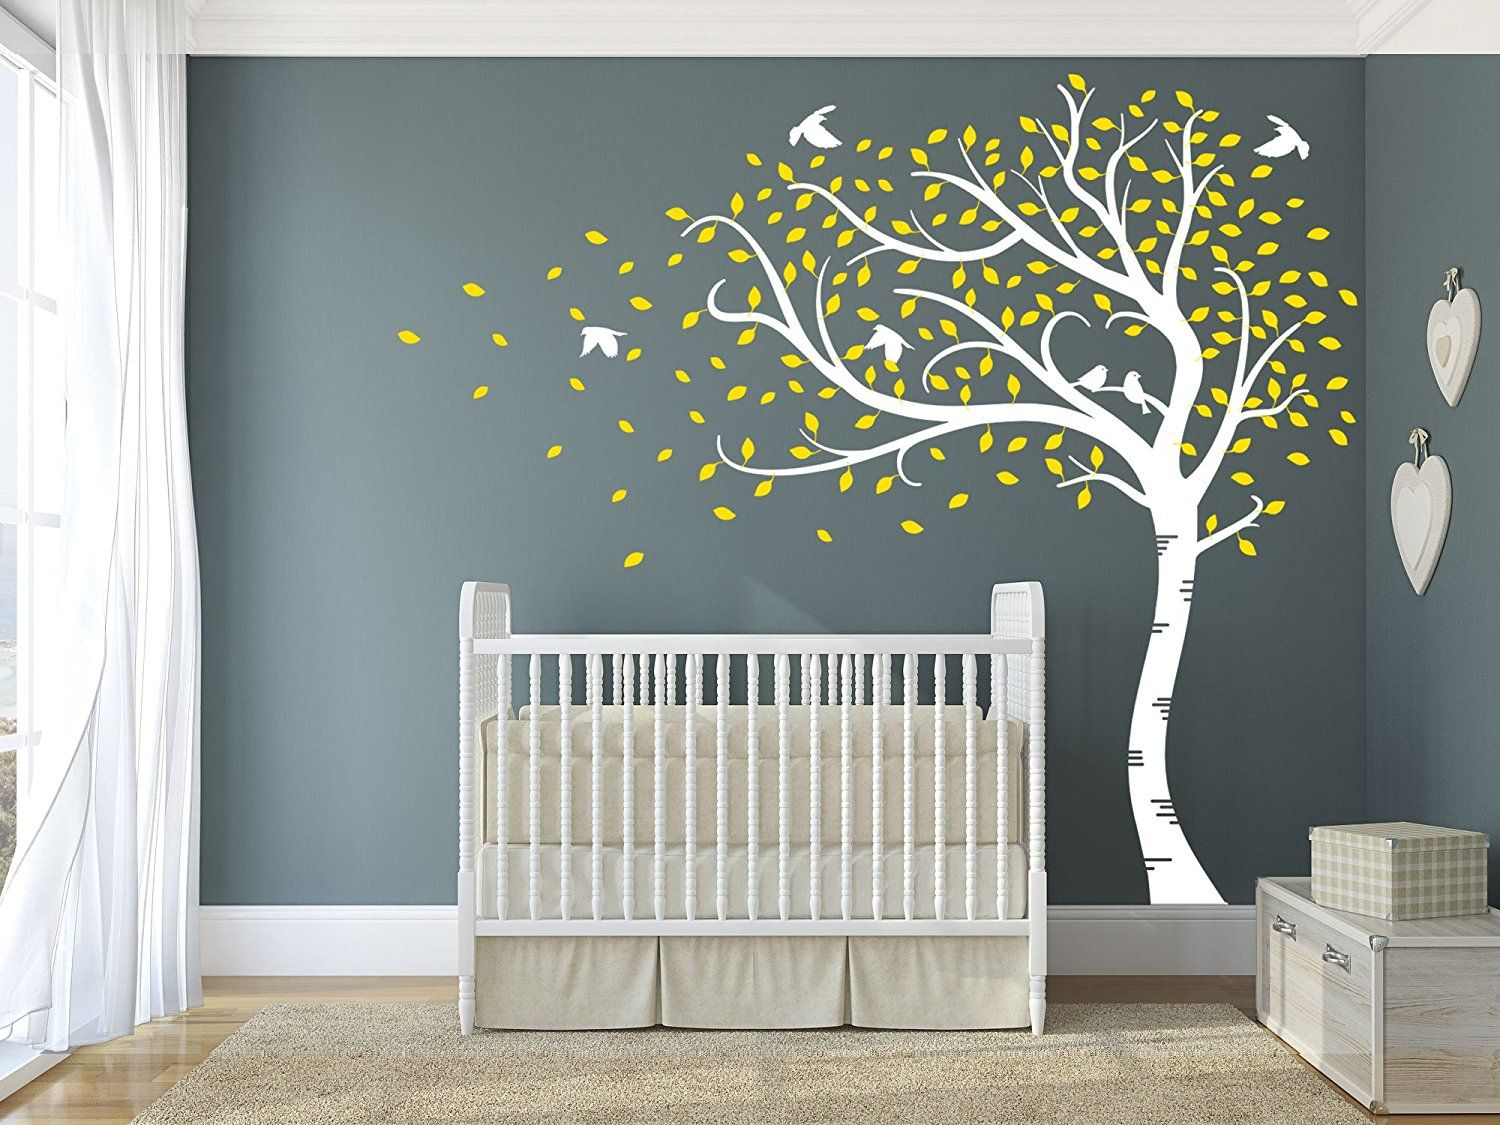 Design Divils Premium Large Sweeping Autumn Tree With Leaves And - Nursery wall decals ukbaby nursery wall decor uk baby room wall art uk grey and yellow